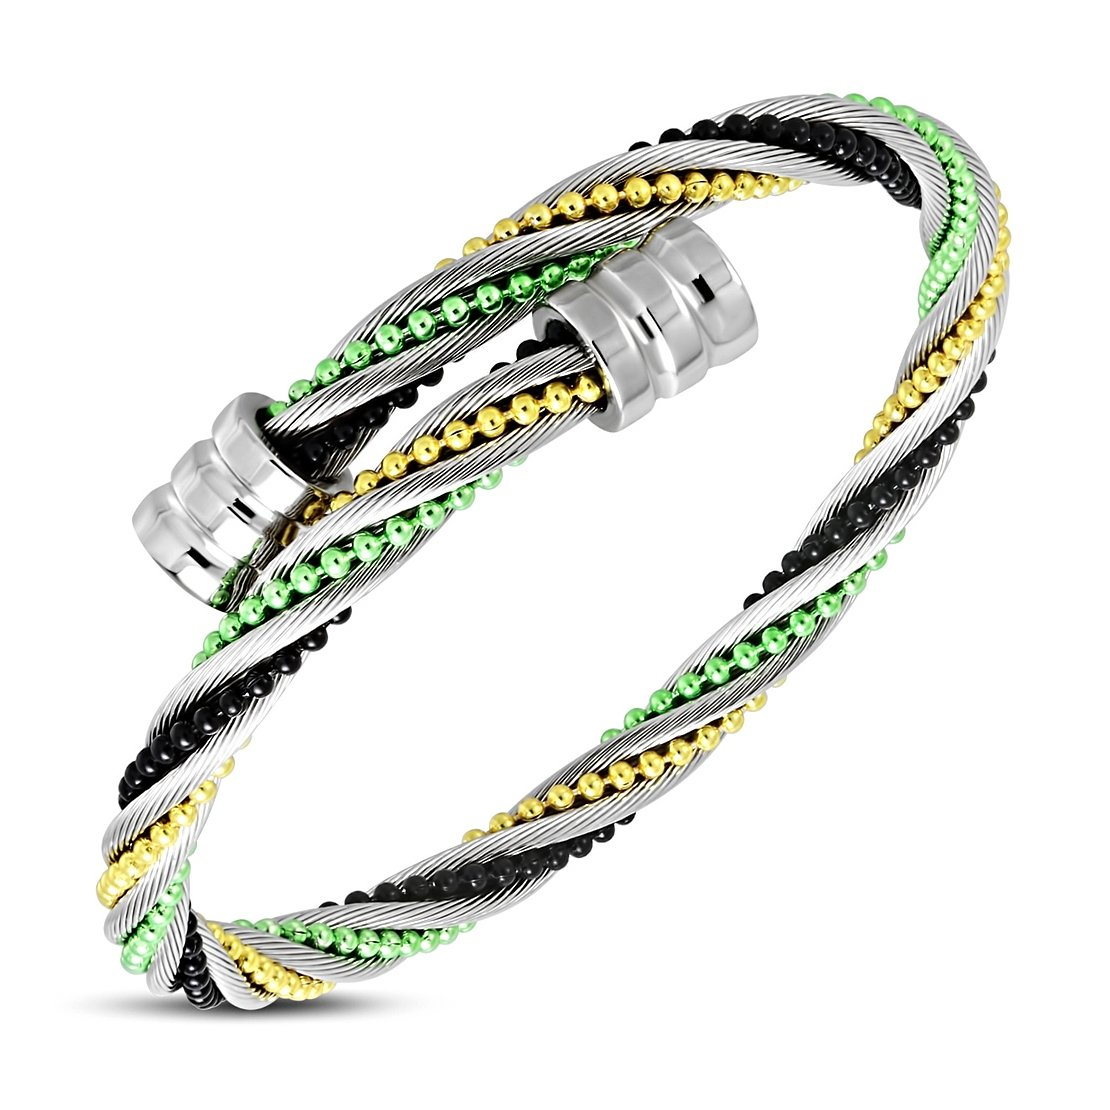 NRG 316L Jewelry Stainless Steel Twisted Tubular Herringbone Colorful Stitch Beading Celtic Cable Wire Bangle